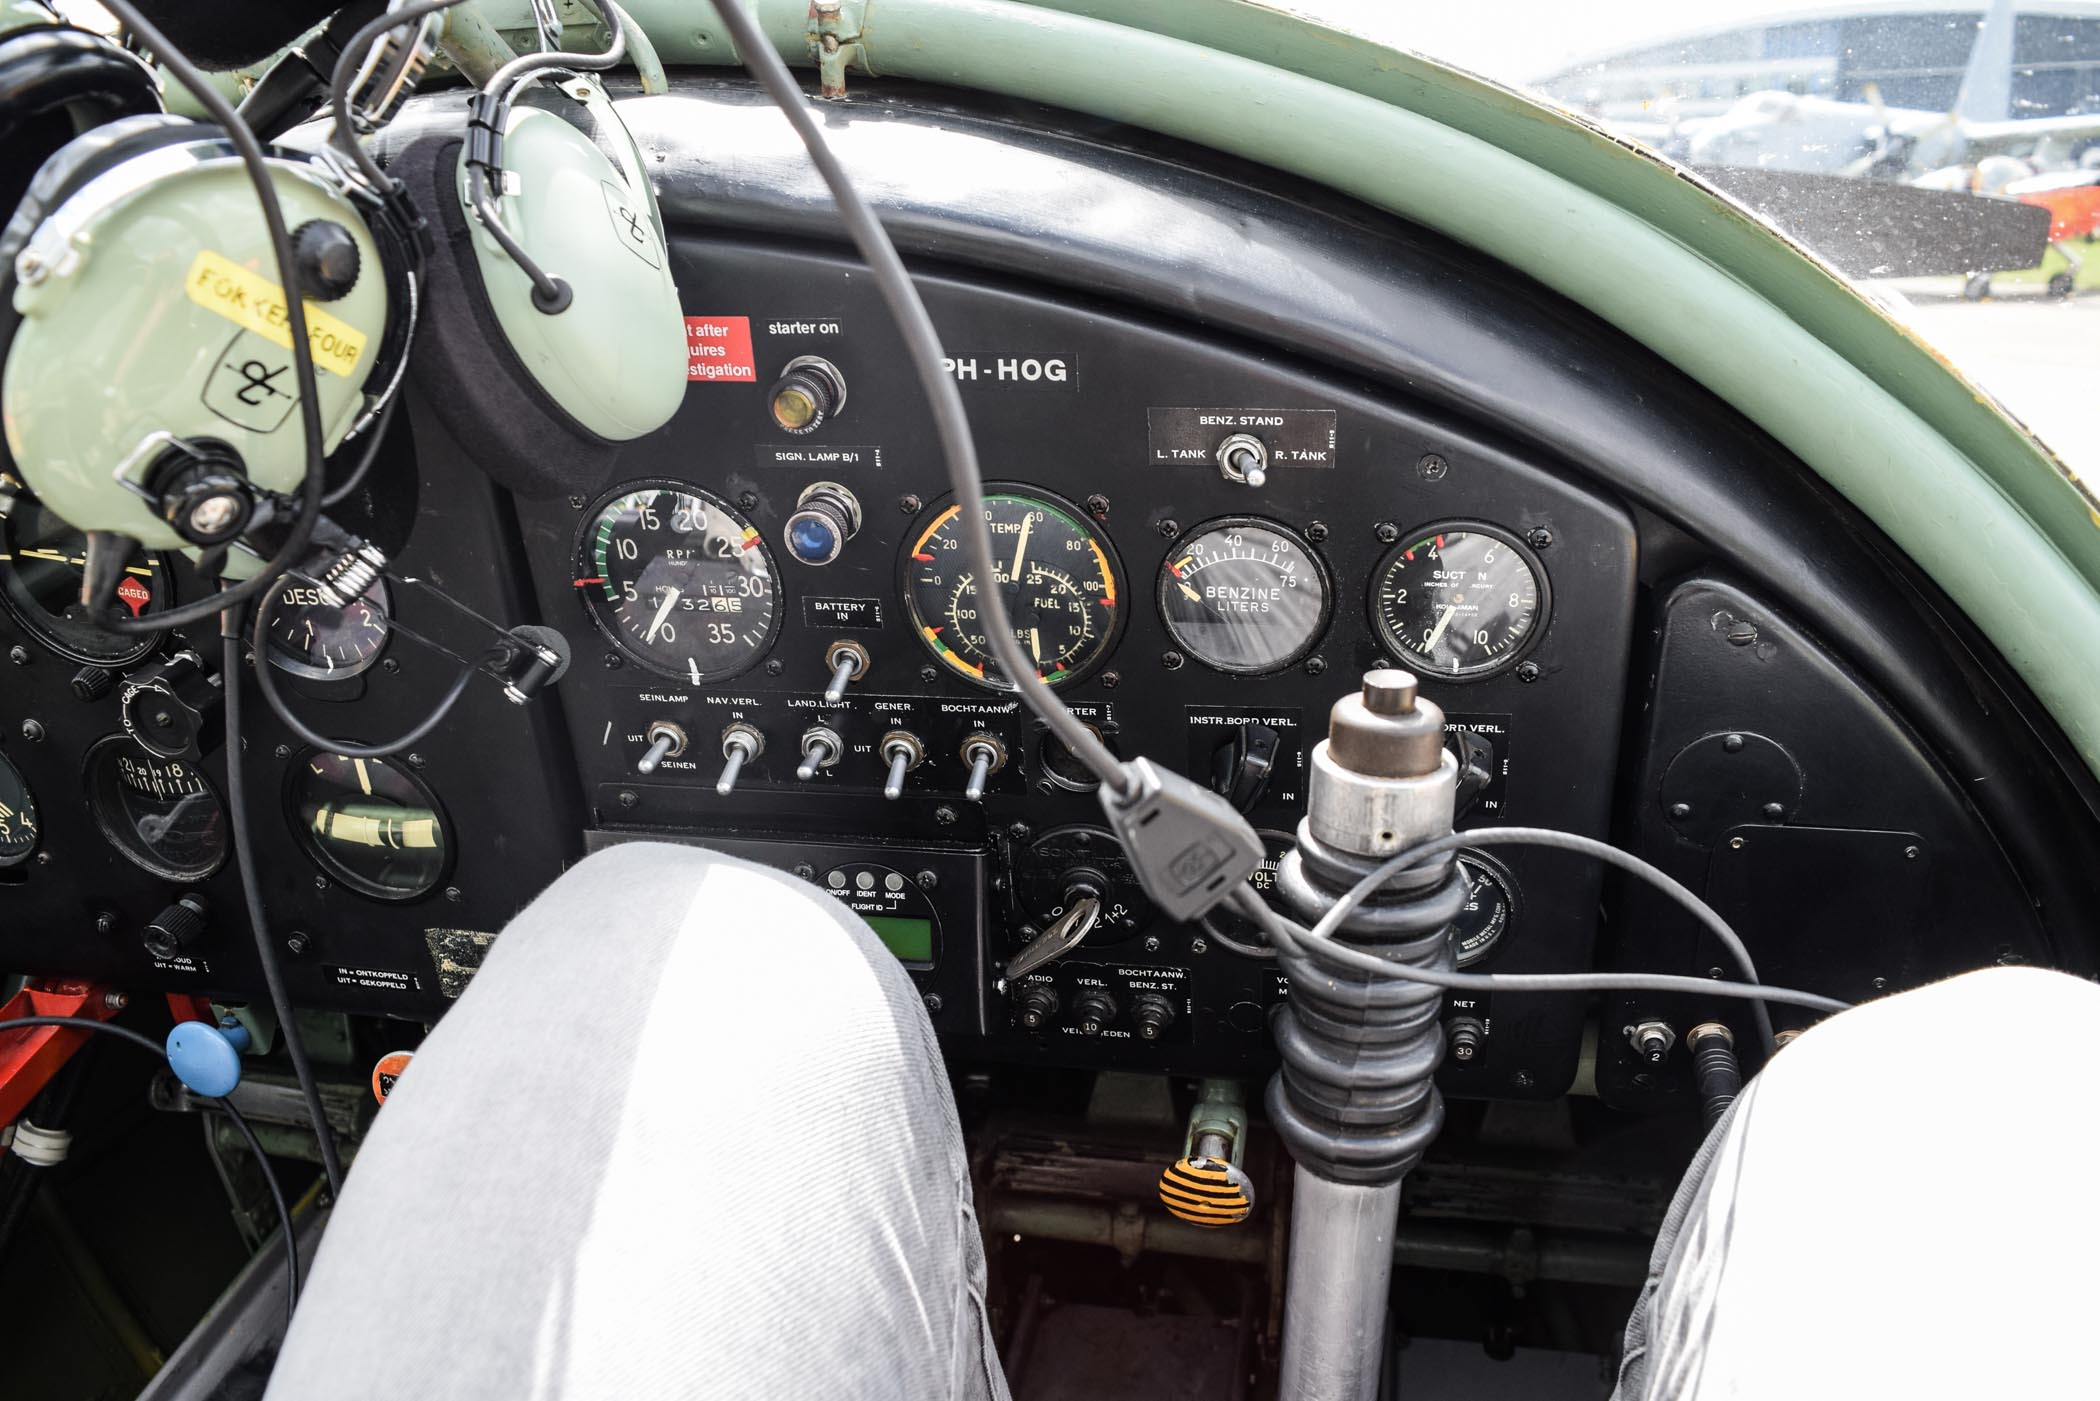 Up in the air with a Van der Gang Vlieger watch - 5